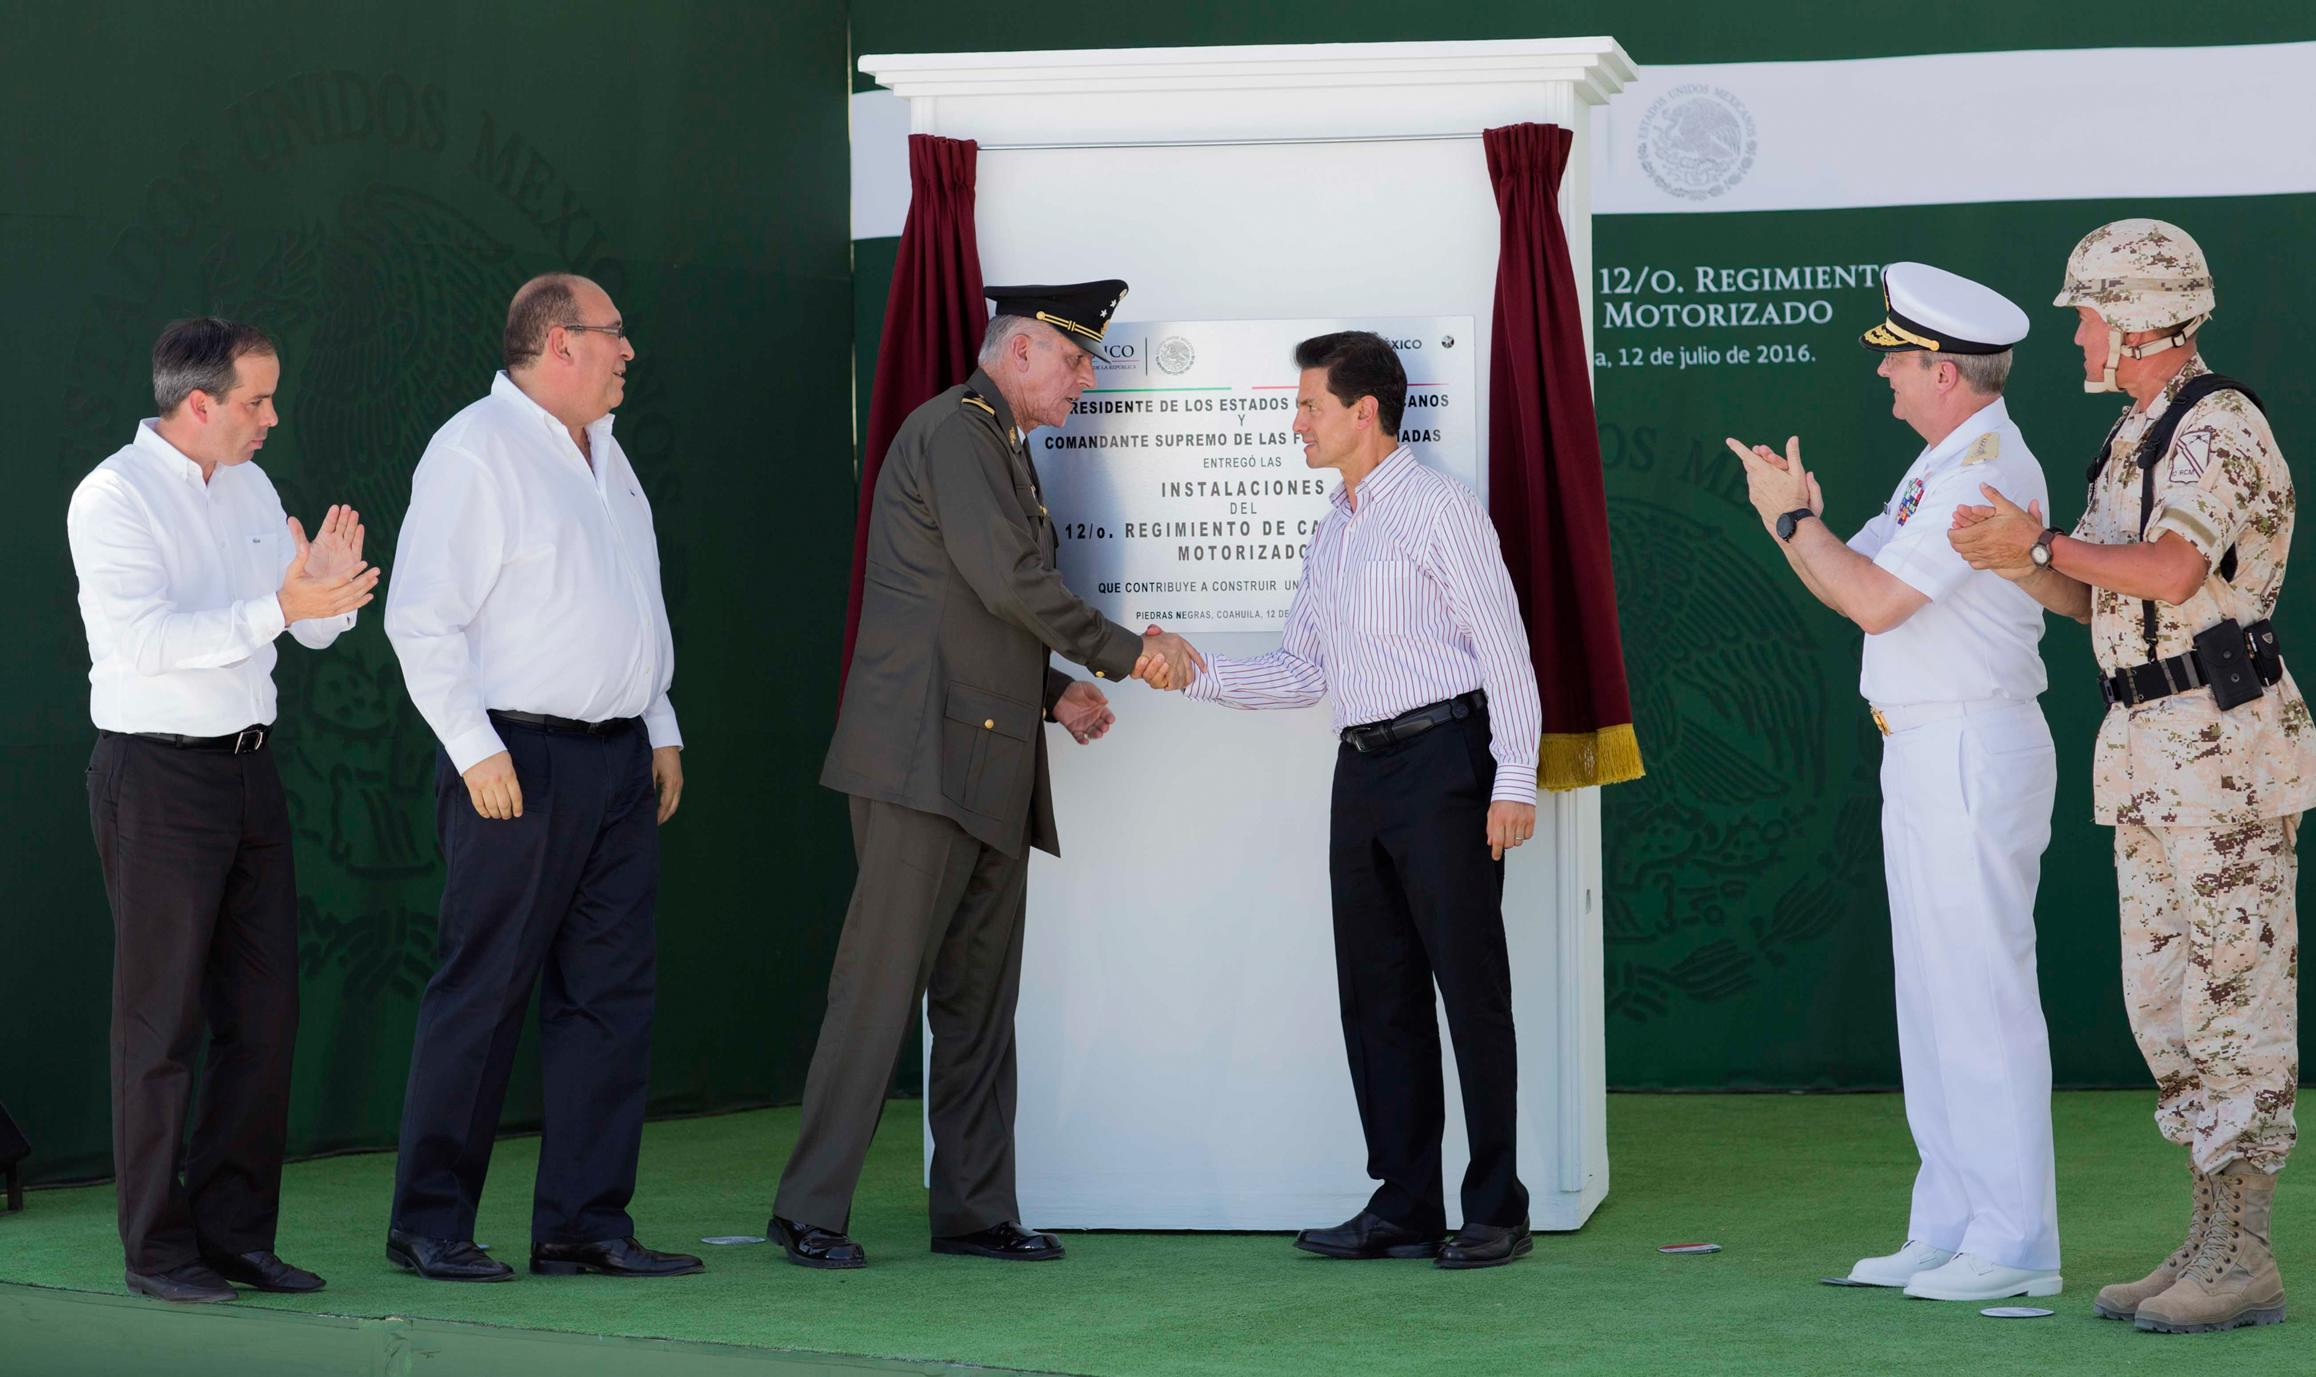 The president inaugurated the 12th Motorized Cavalry Regiment Facilities and its Military Housing Unit.